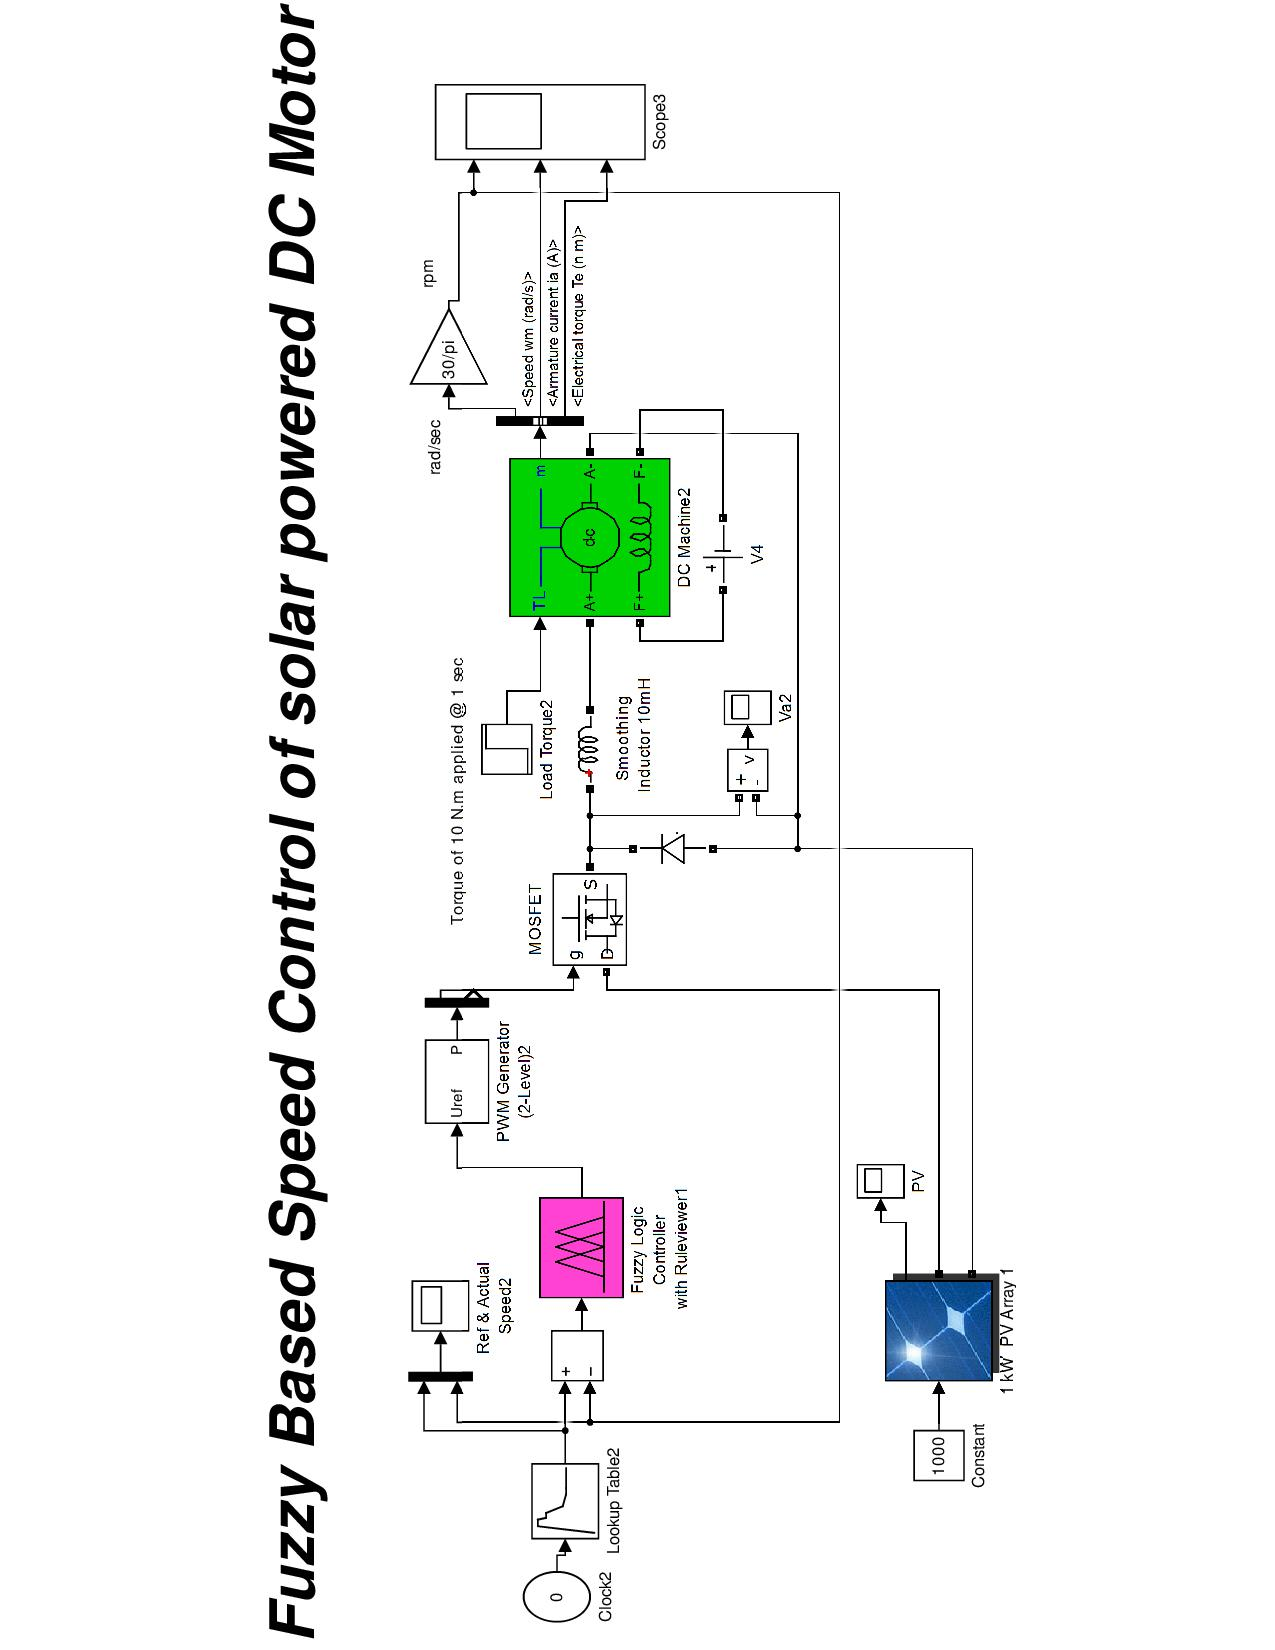 speed control of dc motor using pid controller thesis Discrete pid controller to control the speed of the dc motor is designed using matlabconclusion the dc motor is modeled the fuzzy logic controller is designed to control the speed of the dc motor.